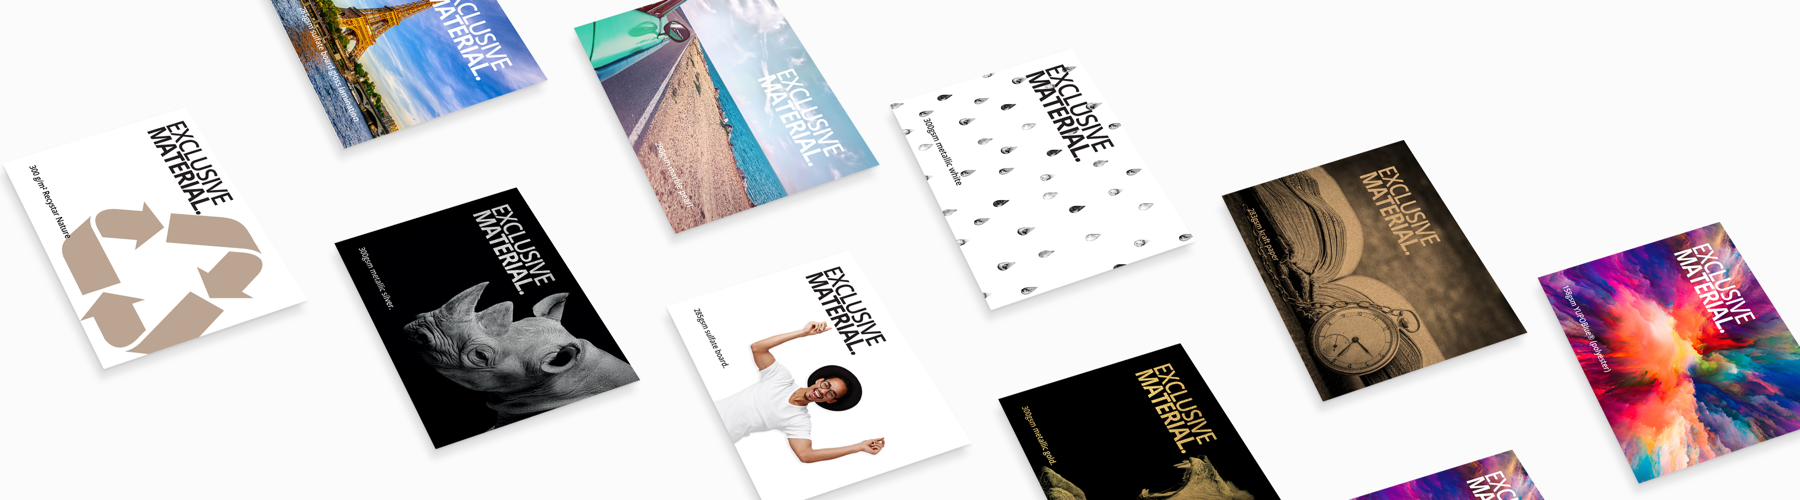 How to Choose the Right Flyer Special Material to Make Your Design Stand Out